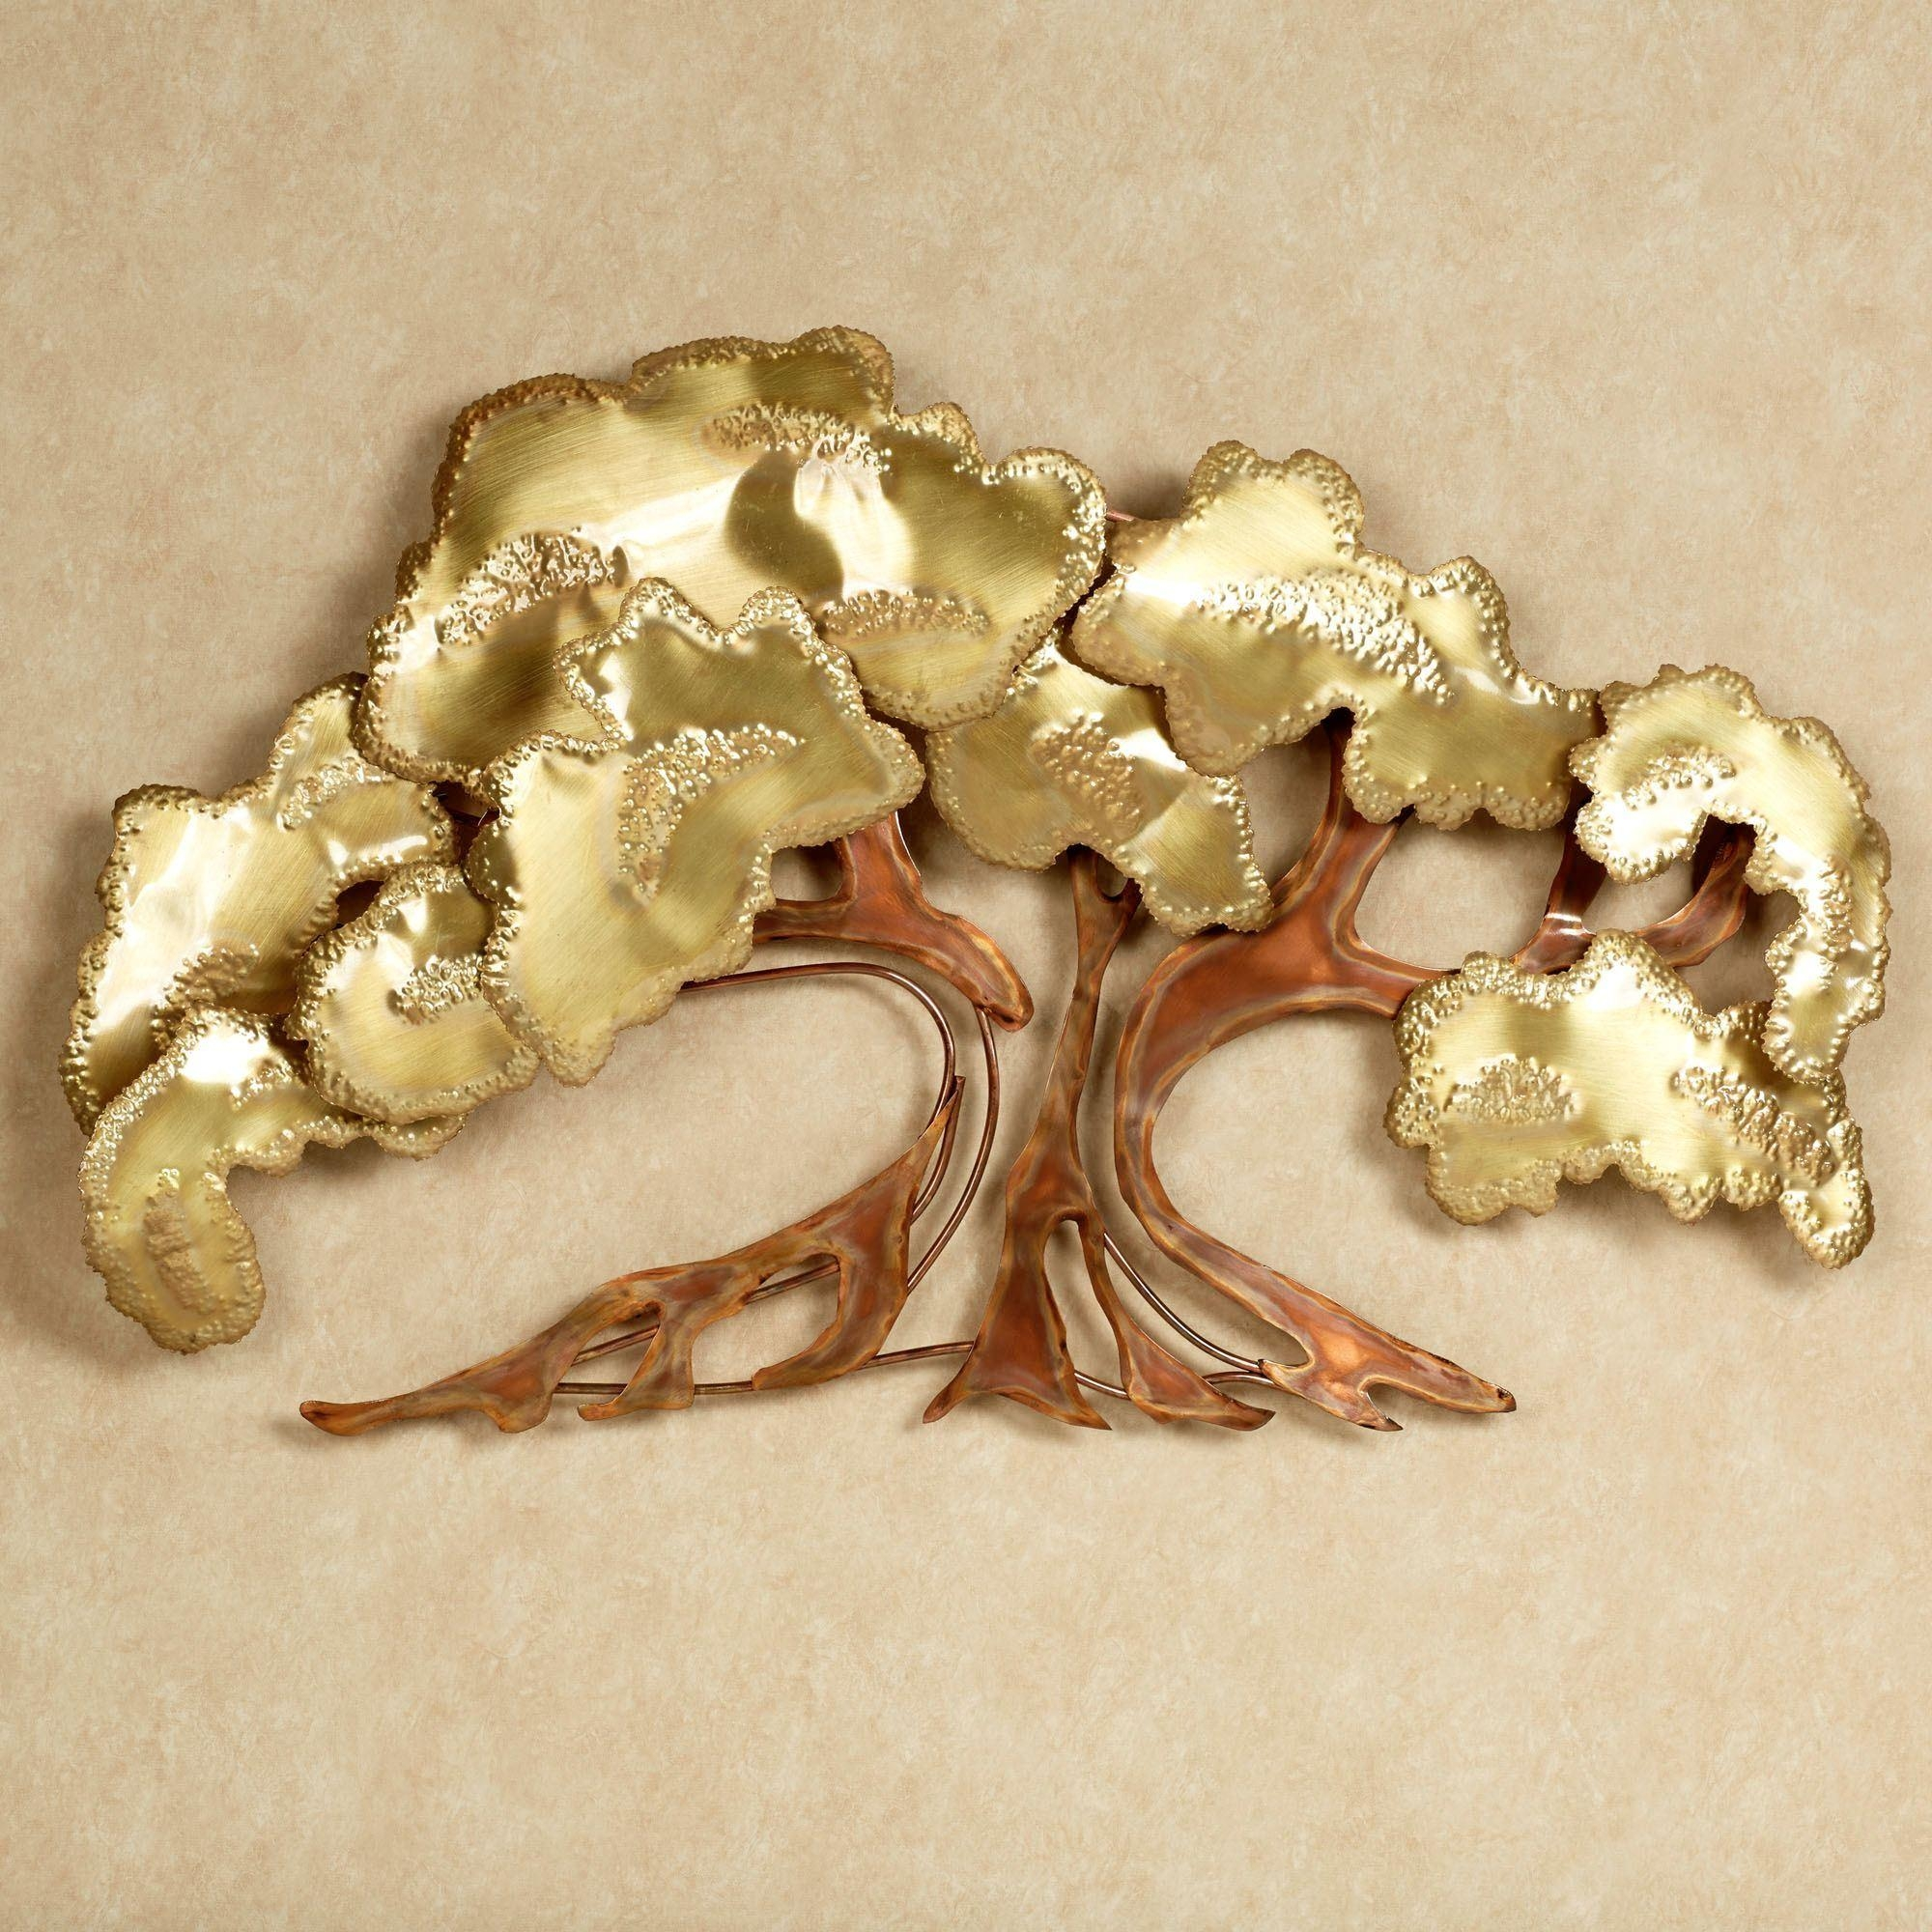 Zen Tree Metal Wall Sculpture Intended For Metal Tree Wall Art Sculpture (View 11 of 20)